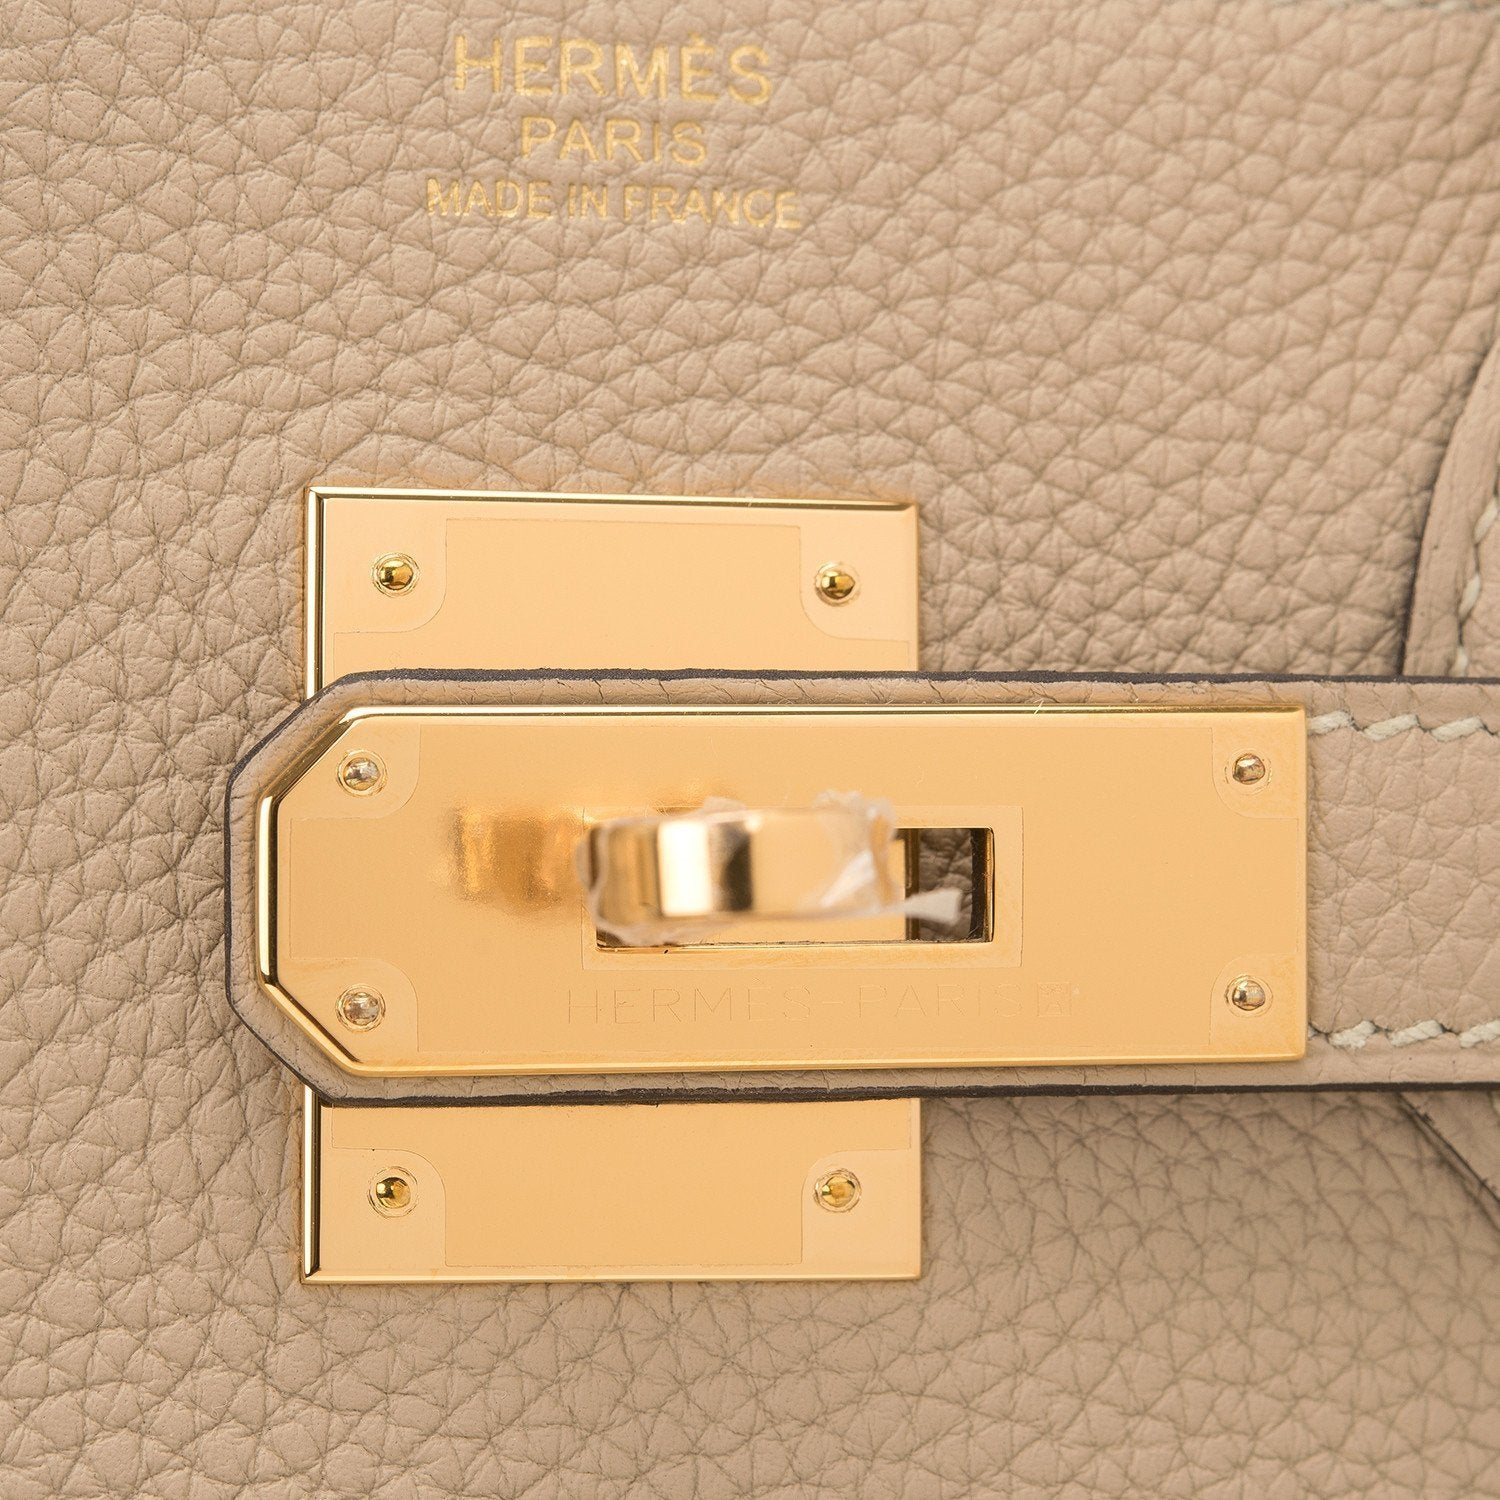 Hermes Trench Togo Birkin 30Cm Gold Hardware Handbags